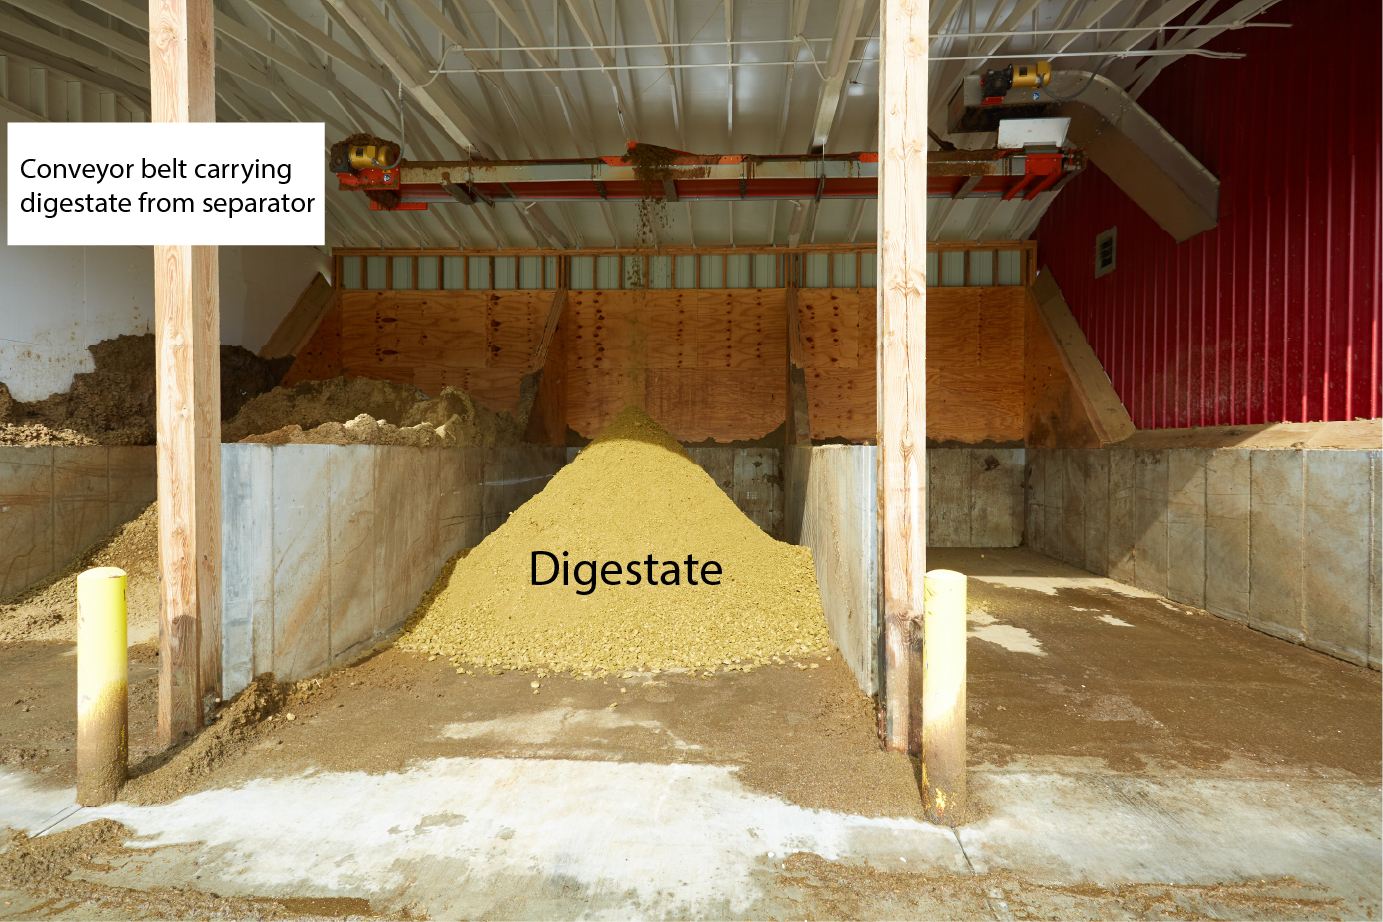 Dry Digestate Collector labeled